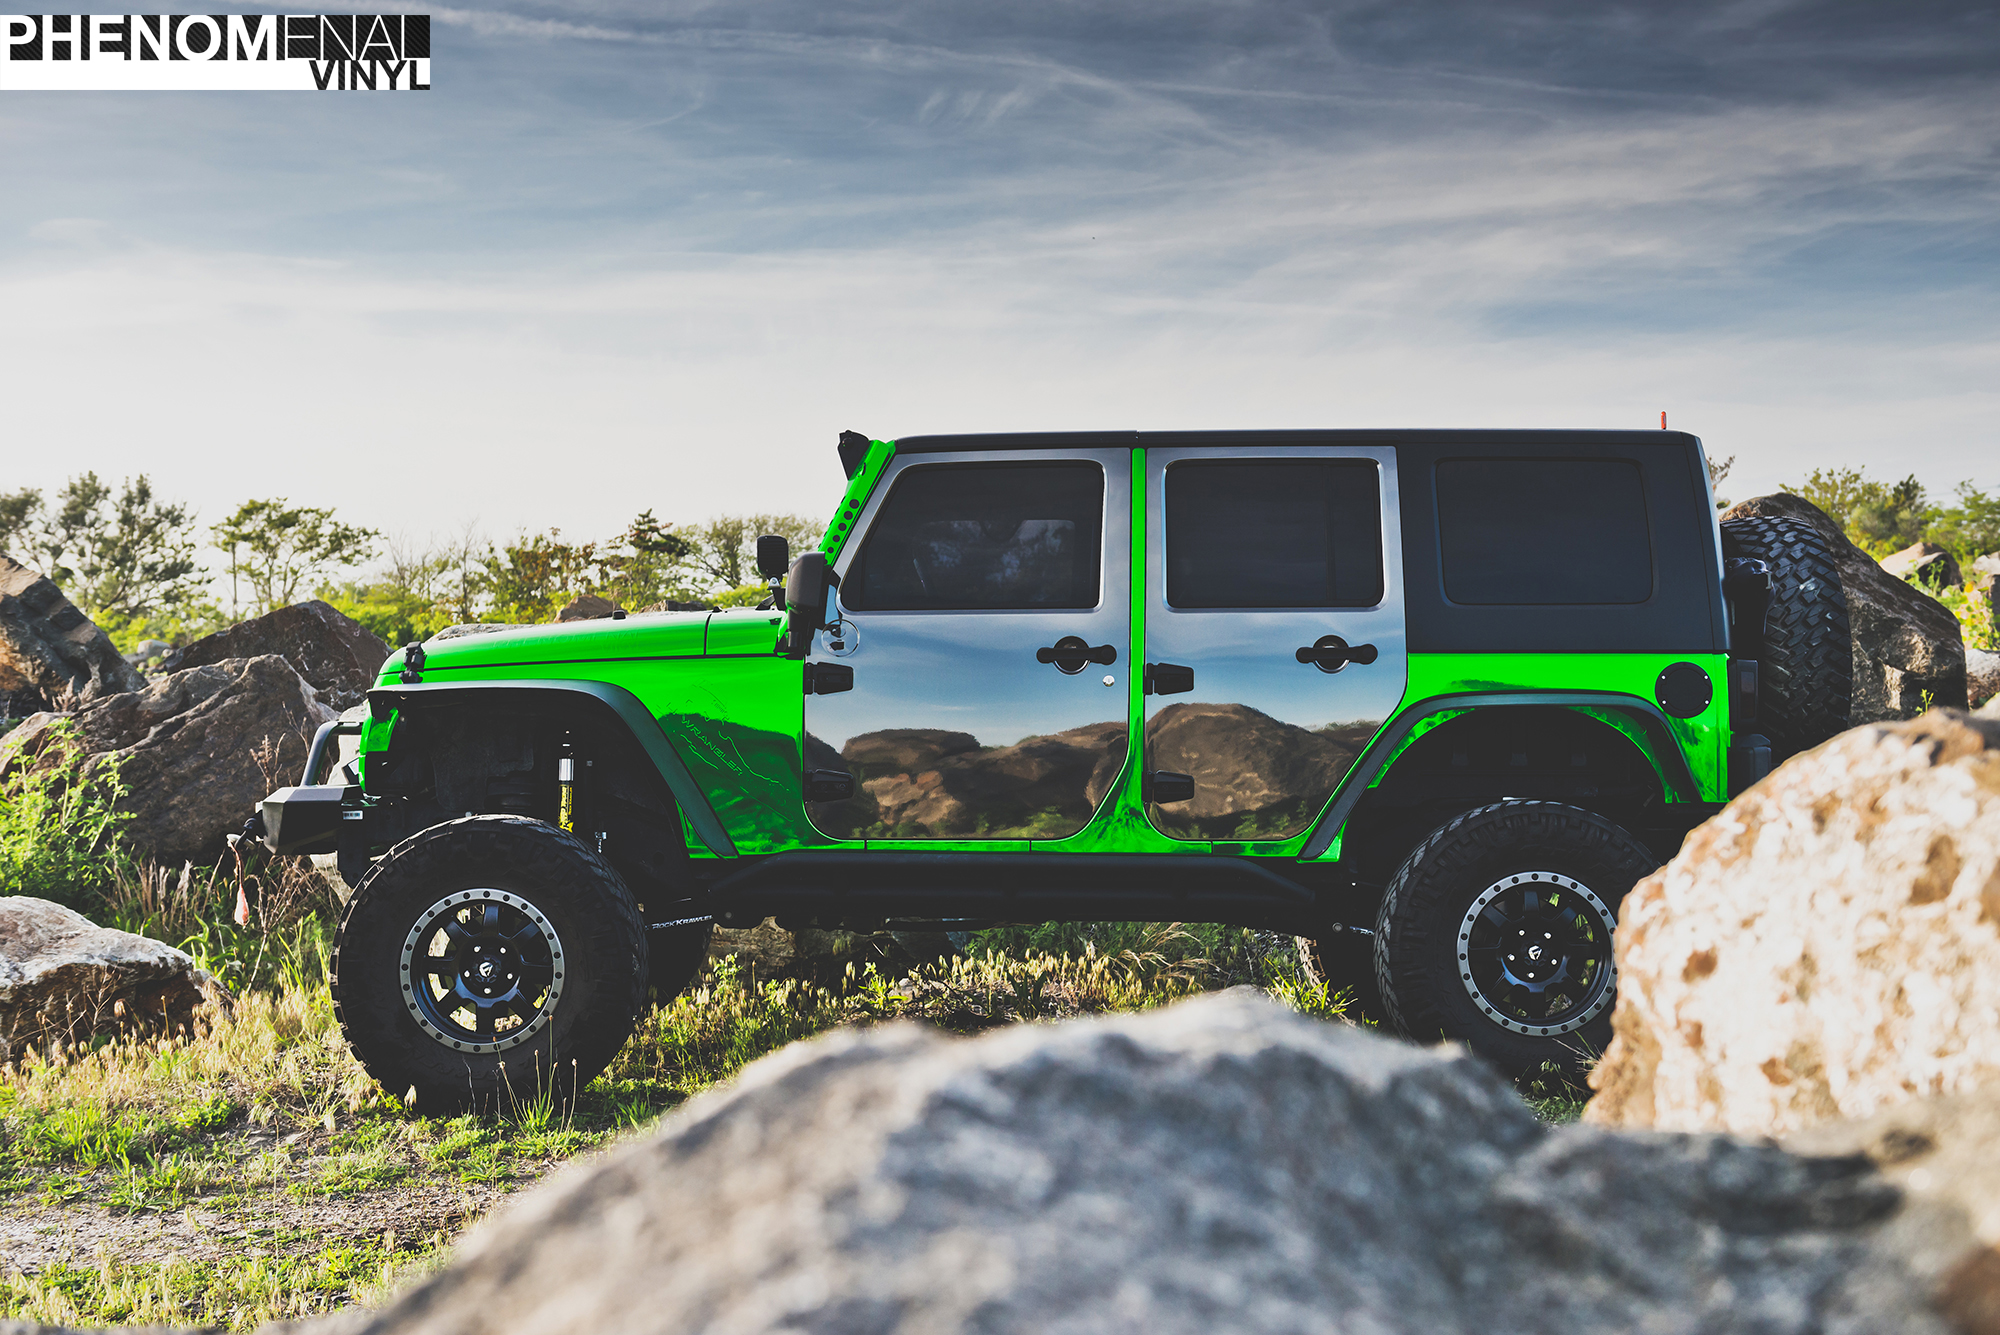 5 Different Wraps 1 Jeep Wrangler Whats your favorite